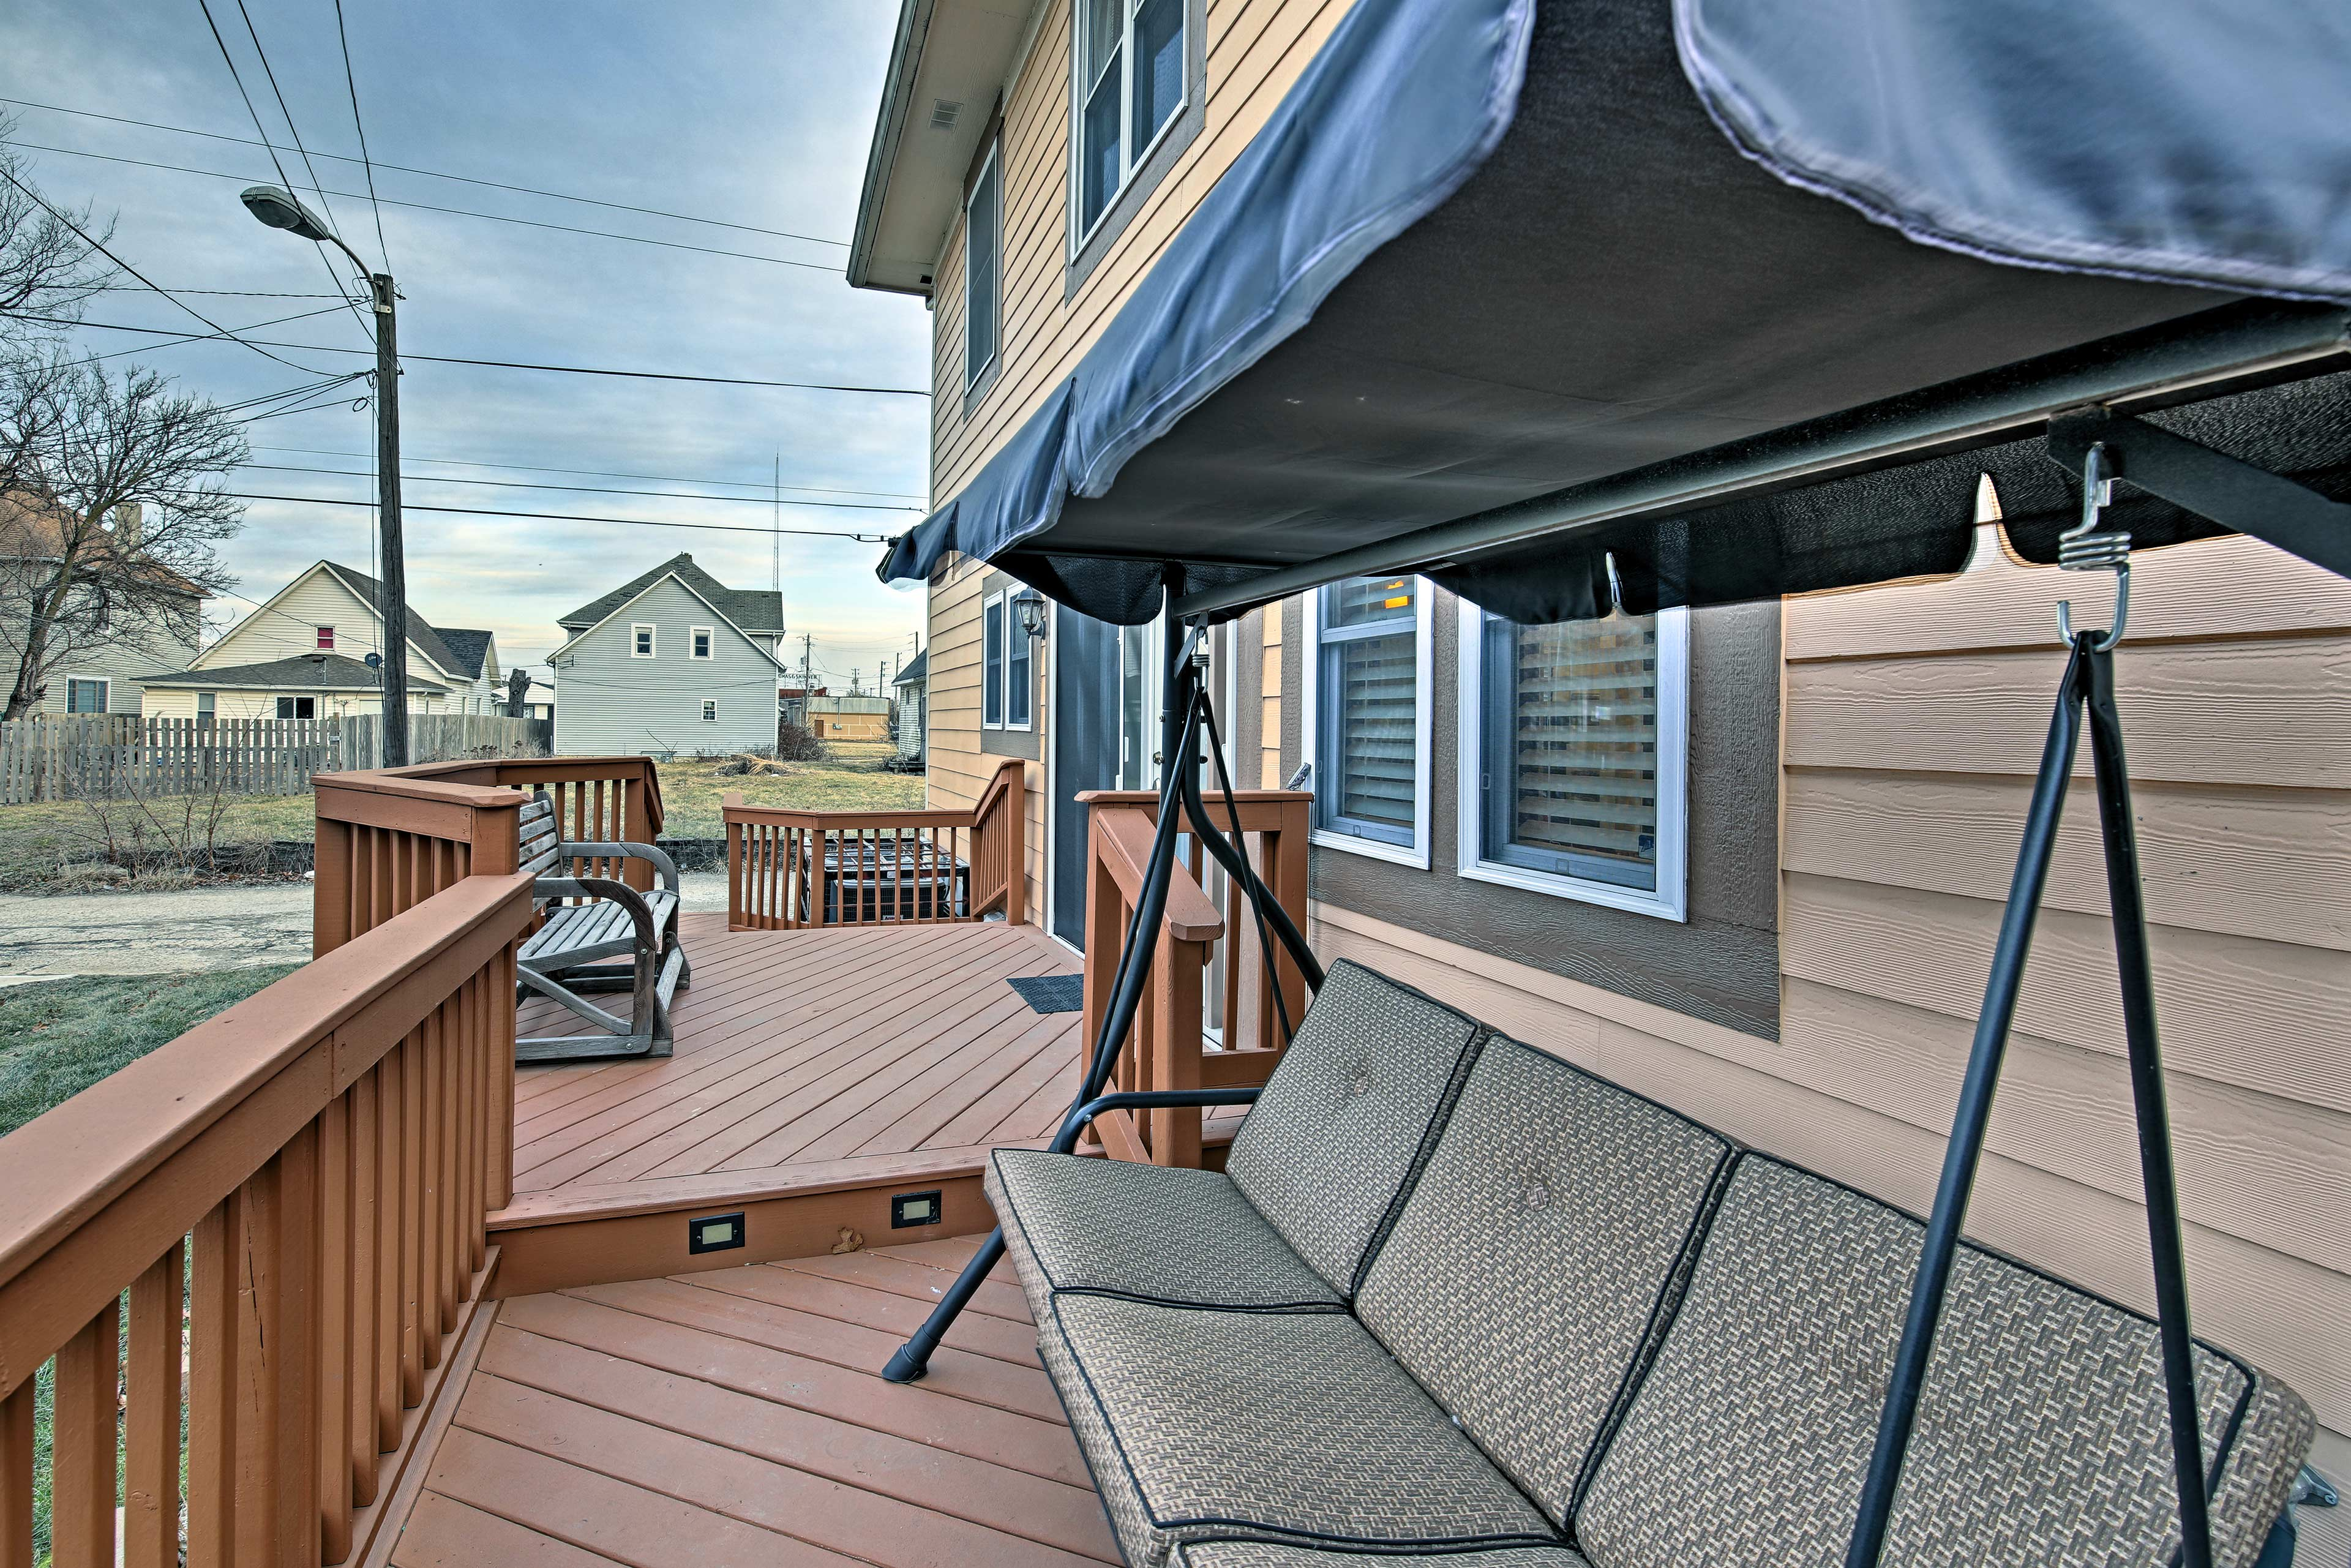 Unwind with a glass of wine on the back deck.